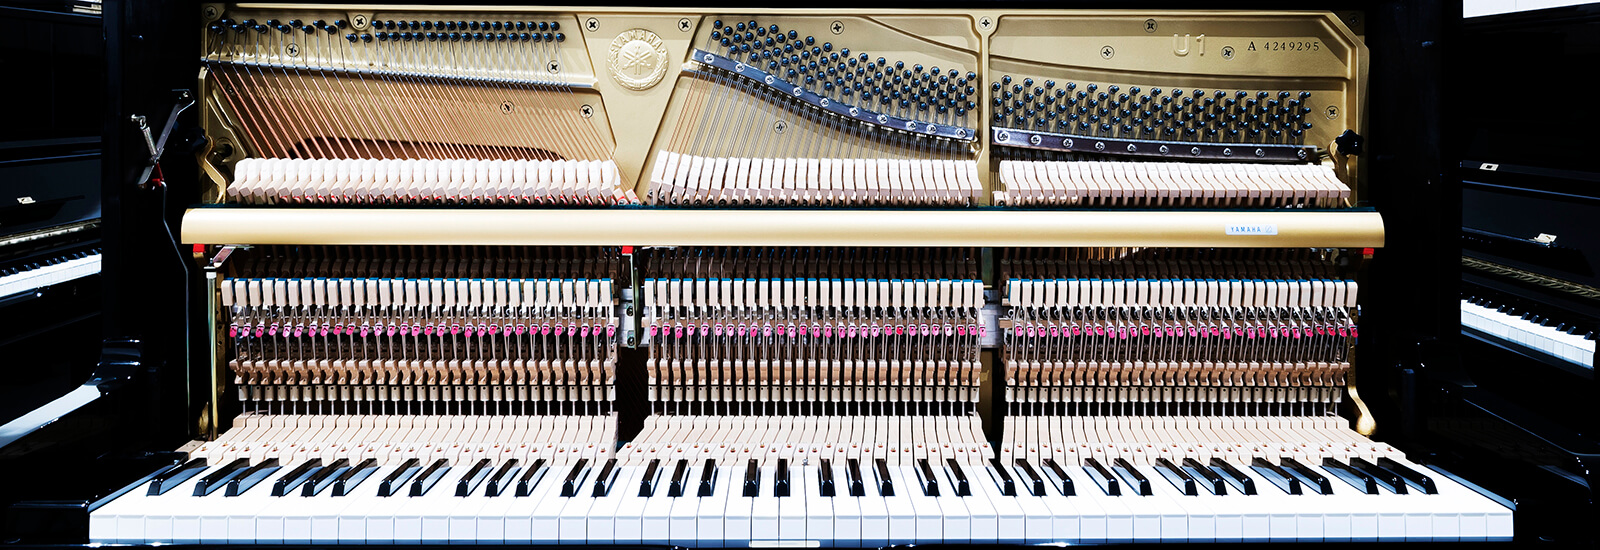 We have the perfect piano for your needs and budget